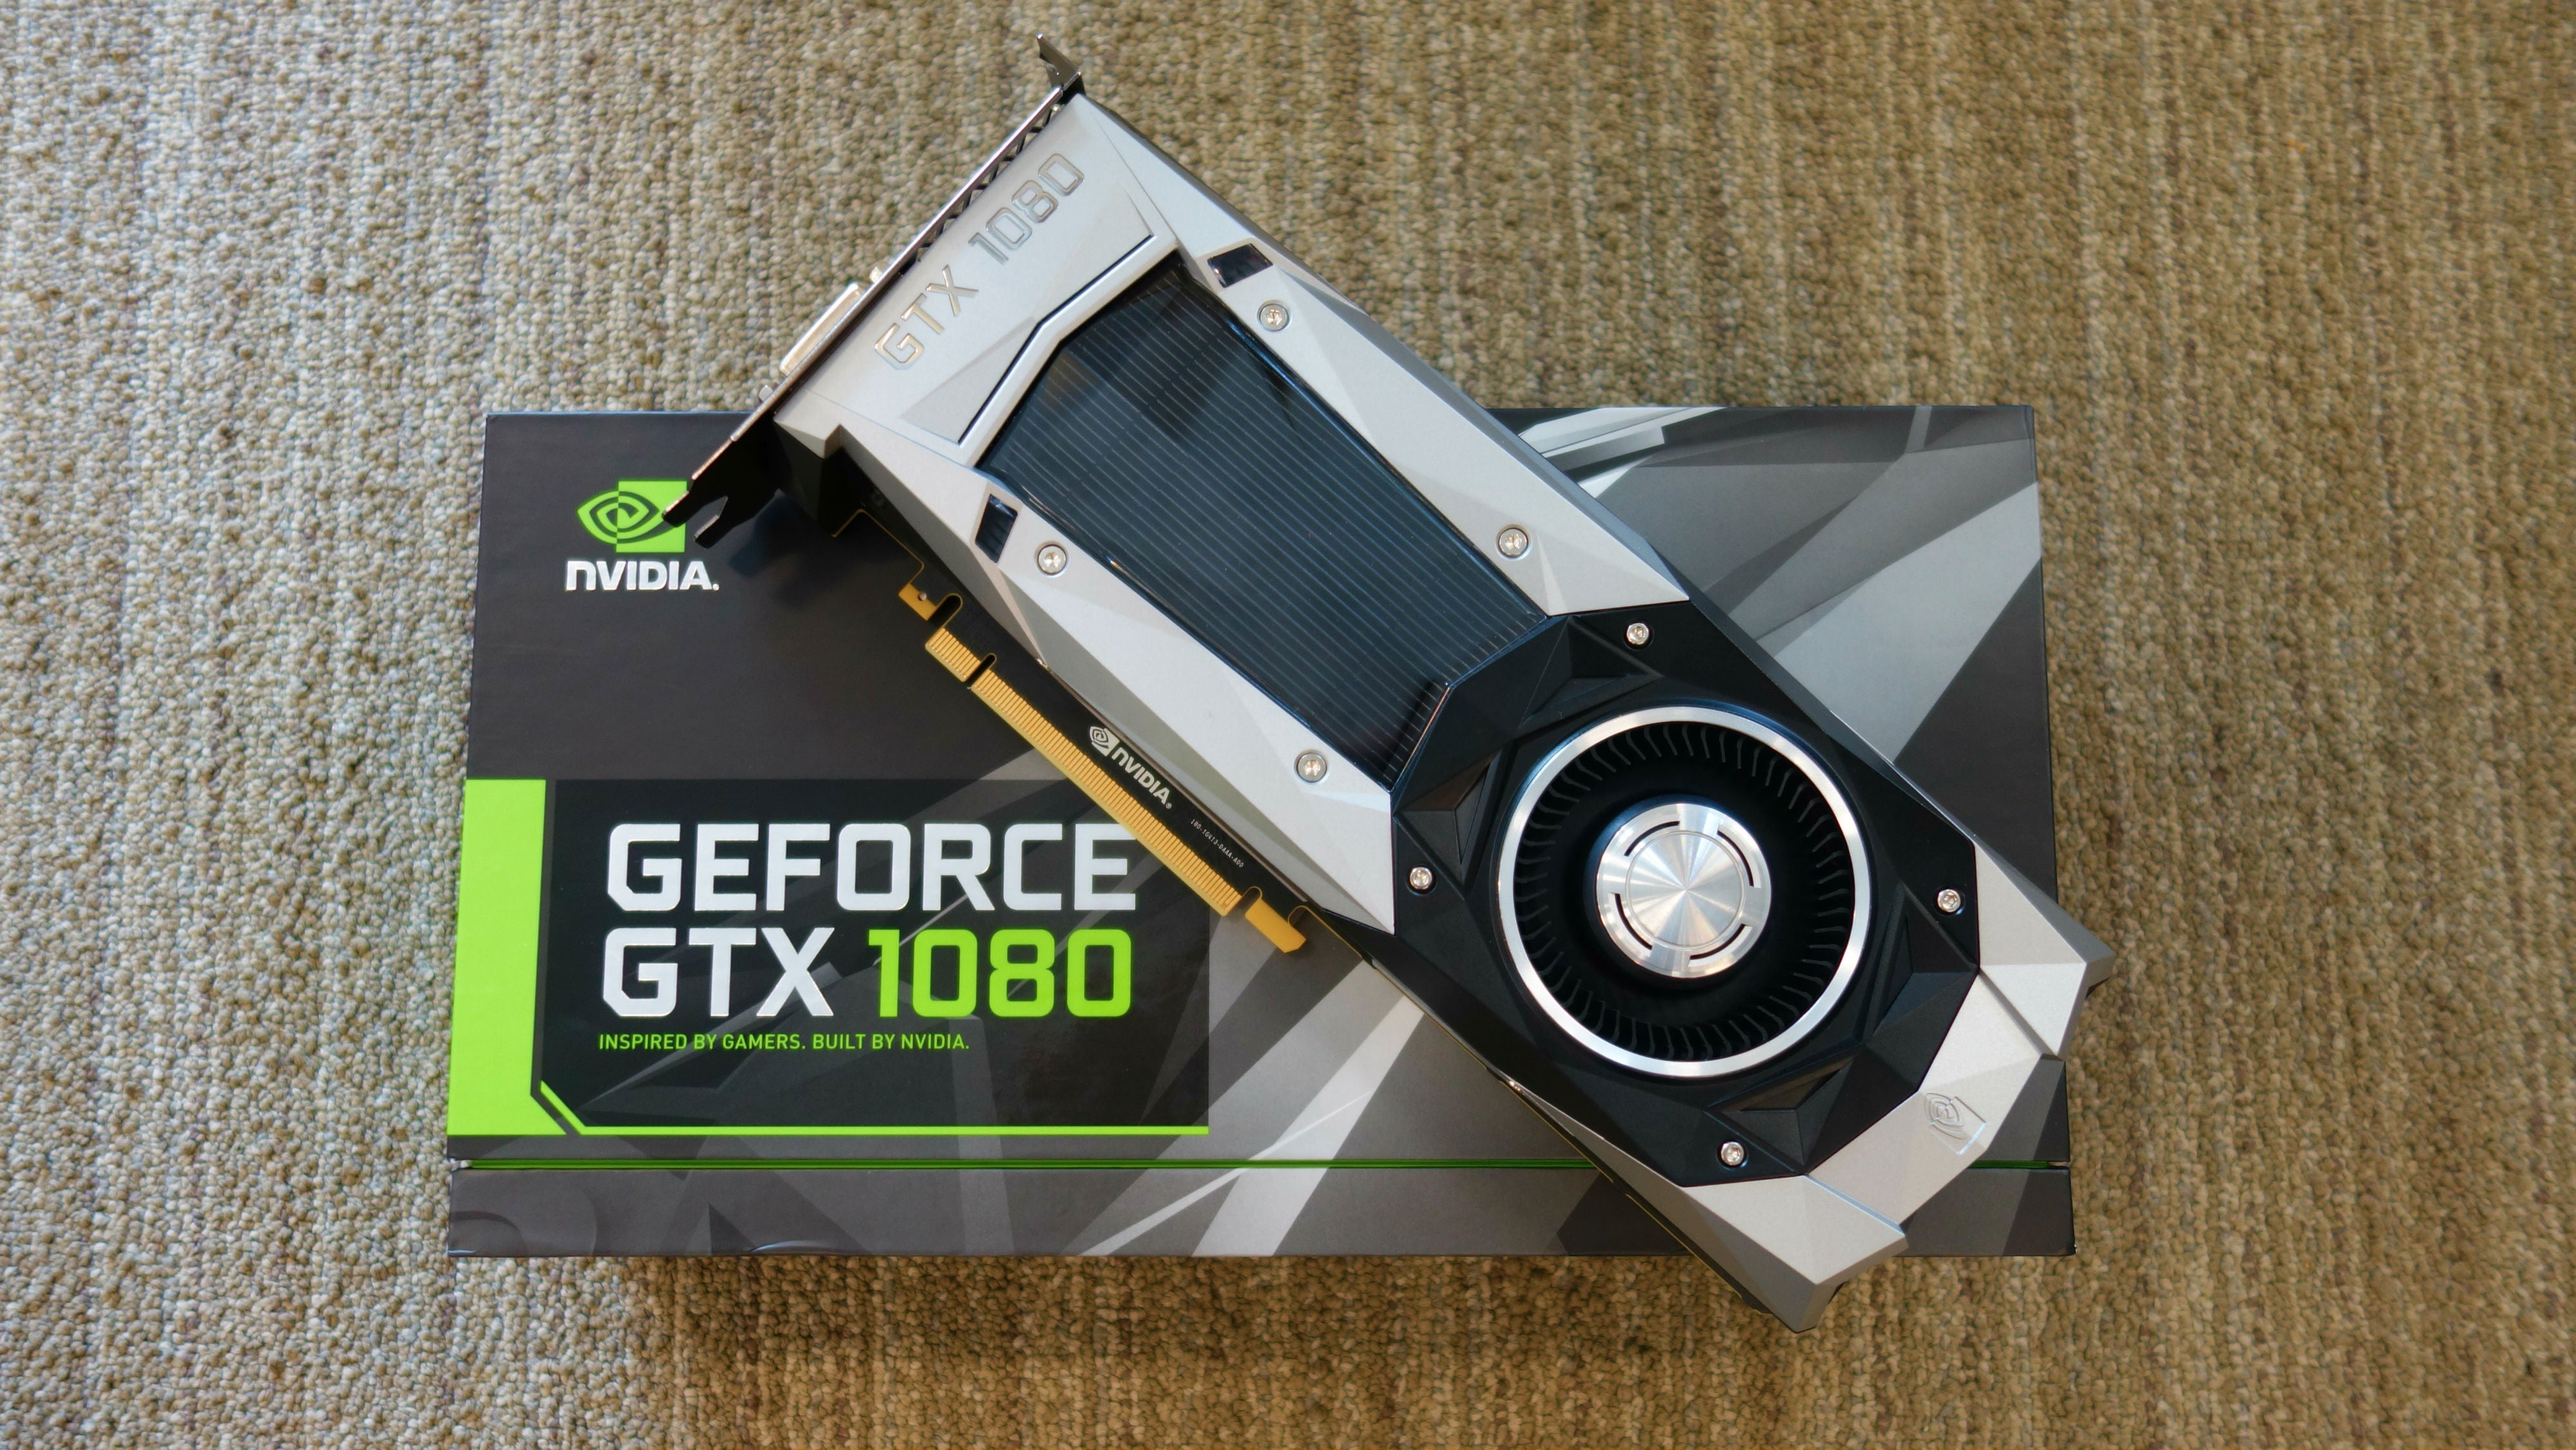 Nvidia Geforce Gtx 1080 Vs 980 Trusted Reviews